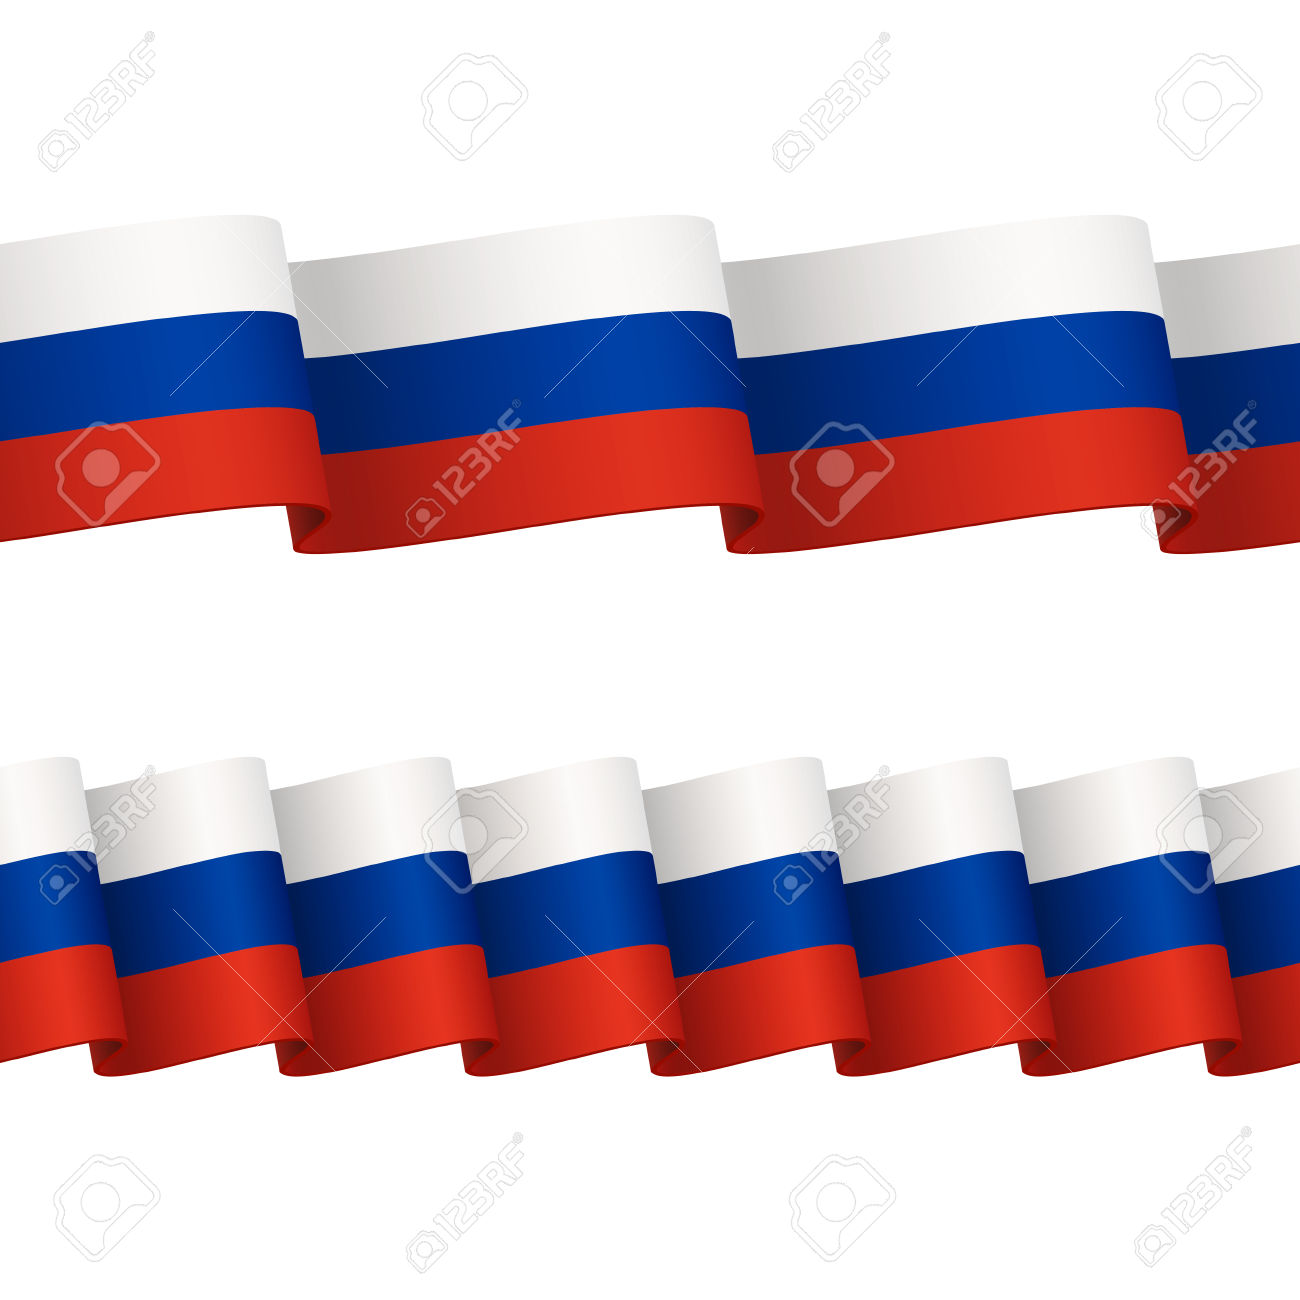 Two Seamless Wavy Surface Ribbons With Colors Of Russian Flag.